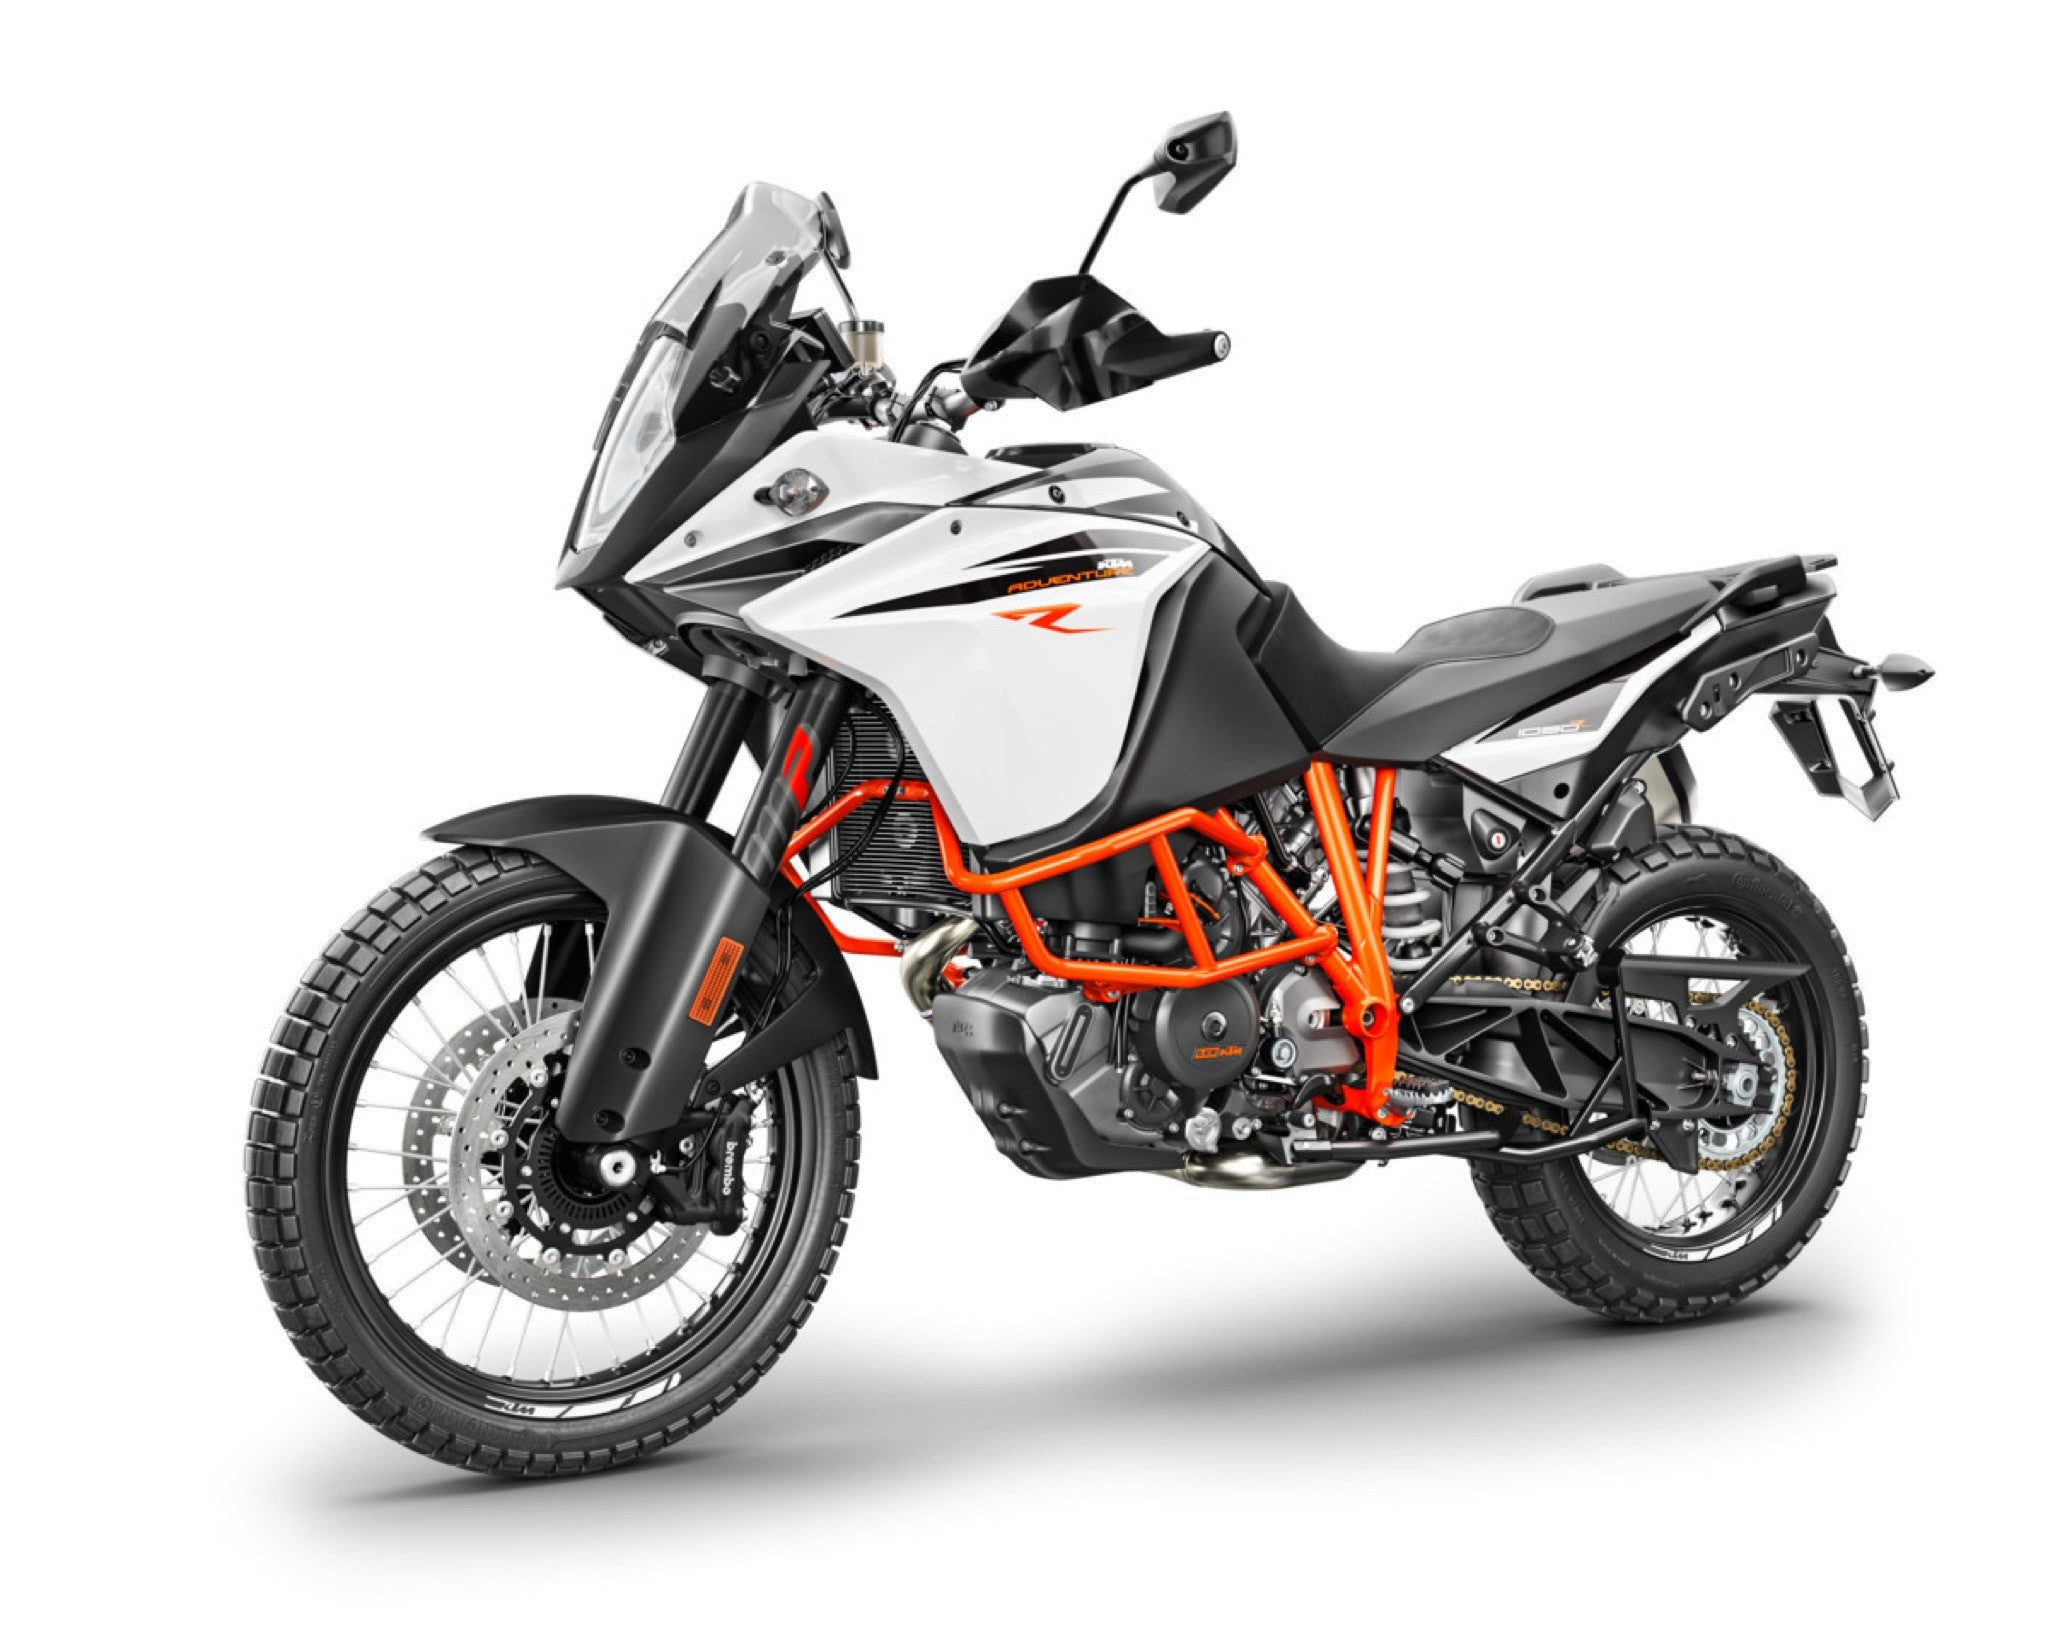 ... 2017 KTM 1090 Adventure R - Motorcycle For Sale - Central Florida  PowerSports ...